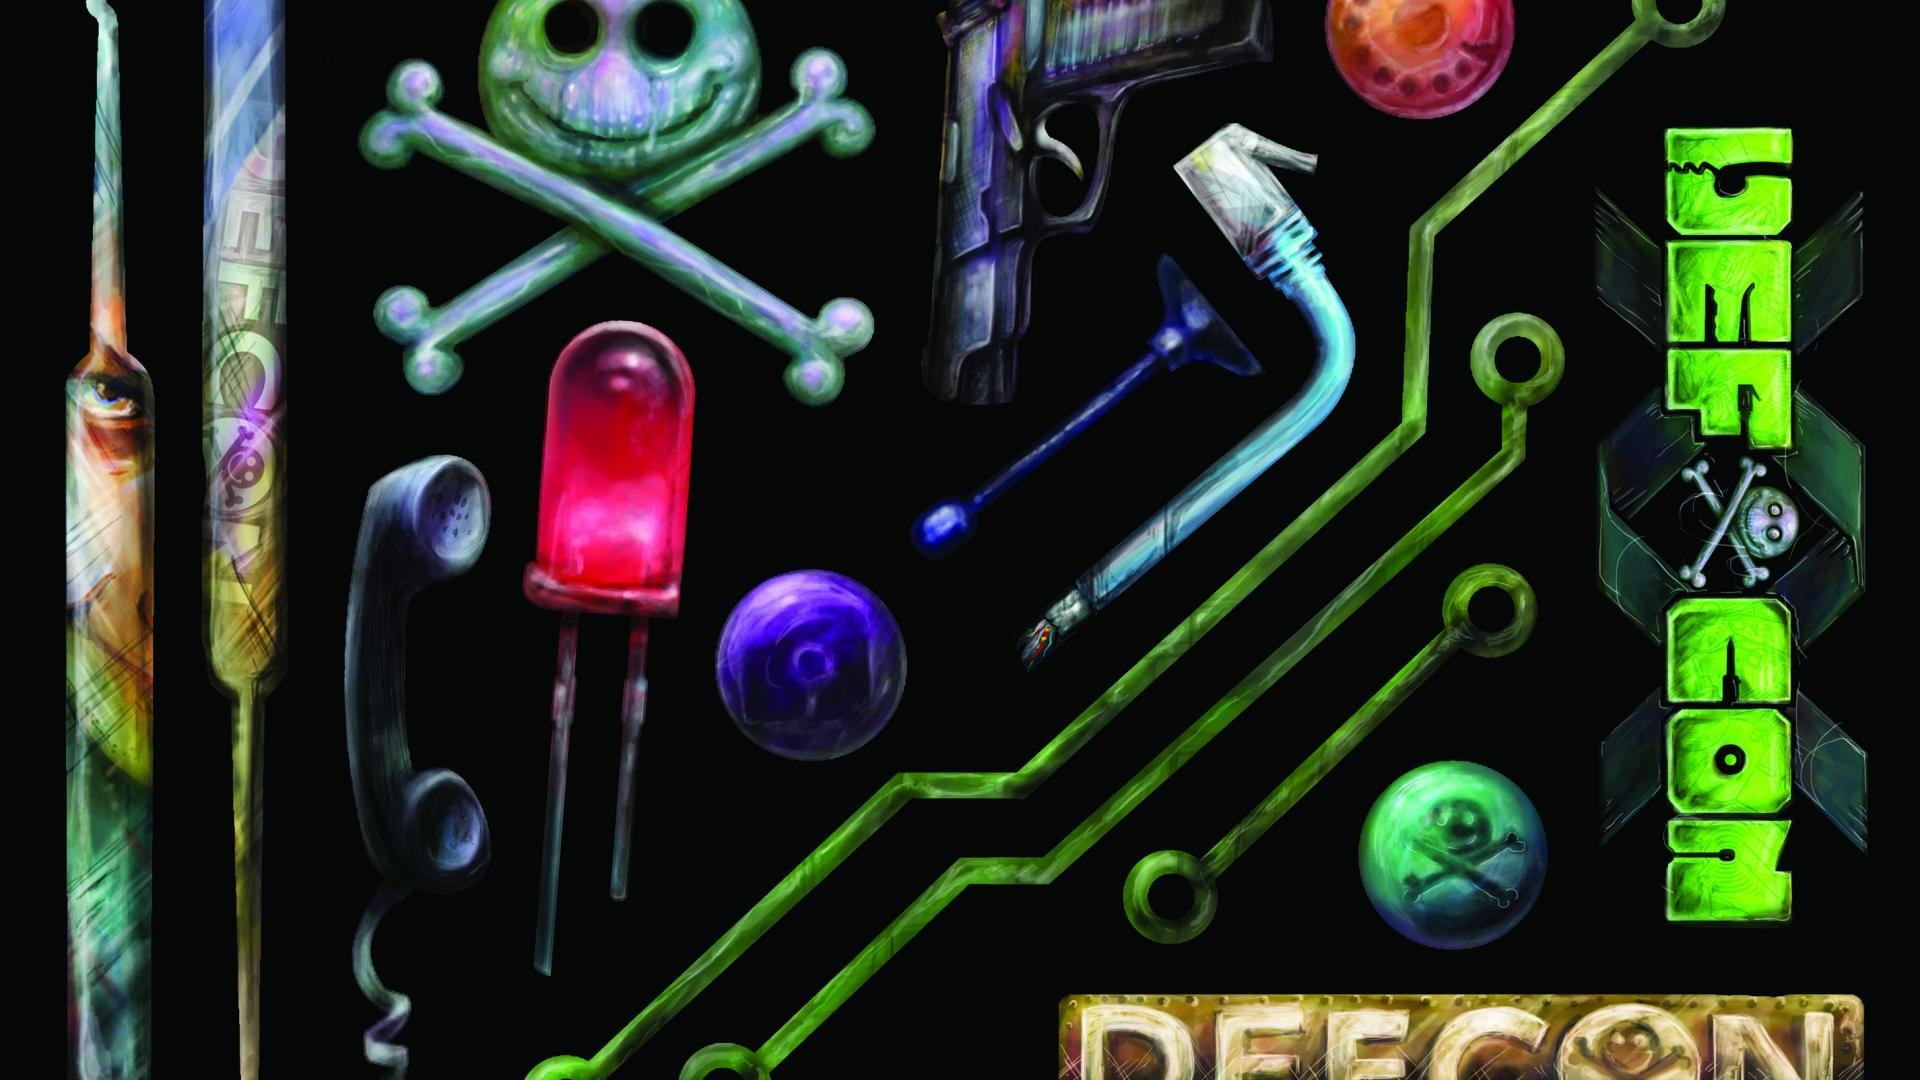 artwork defcon hacking conference stickers wallpaper 30379 1920x1080